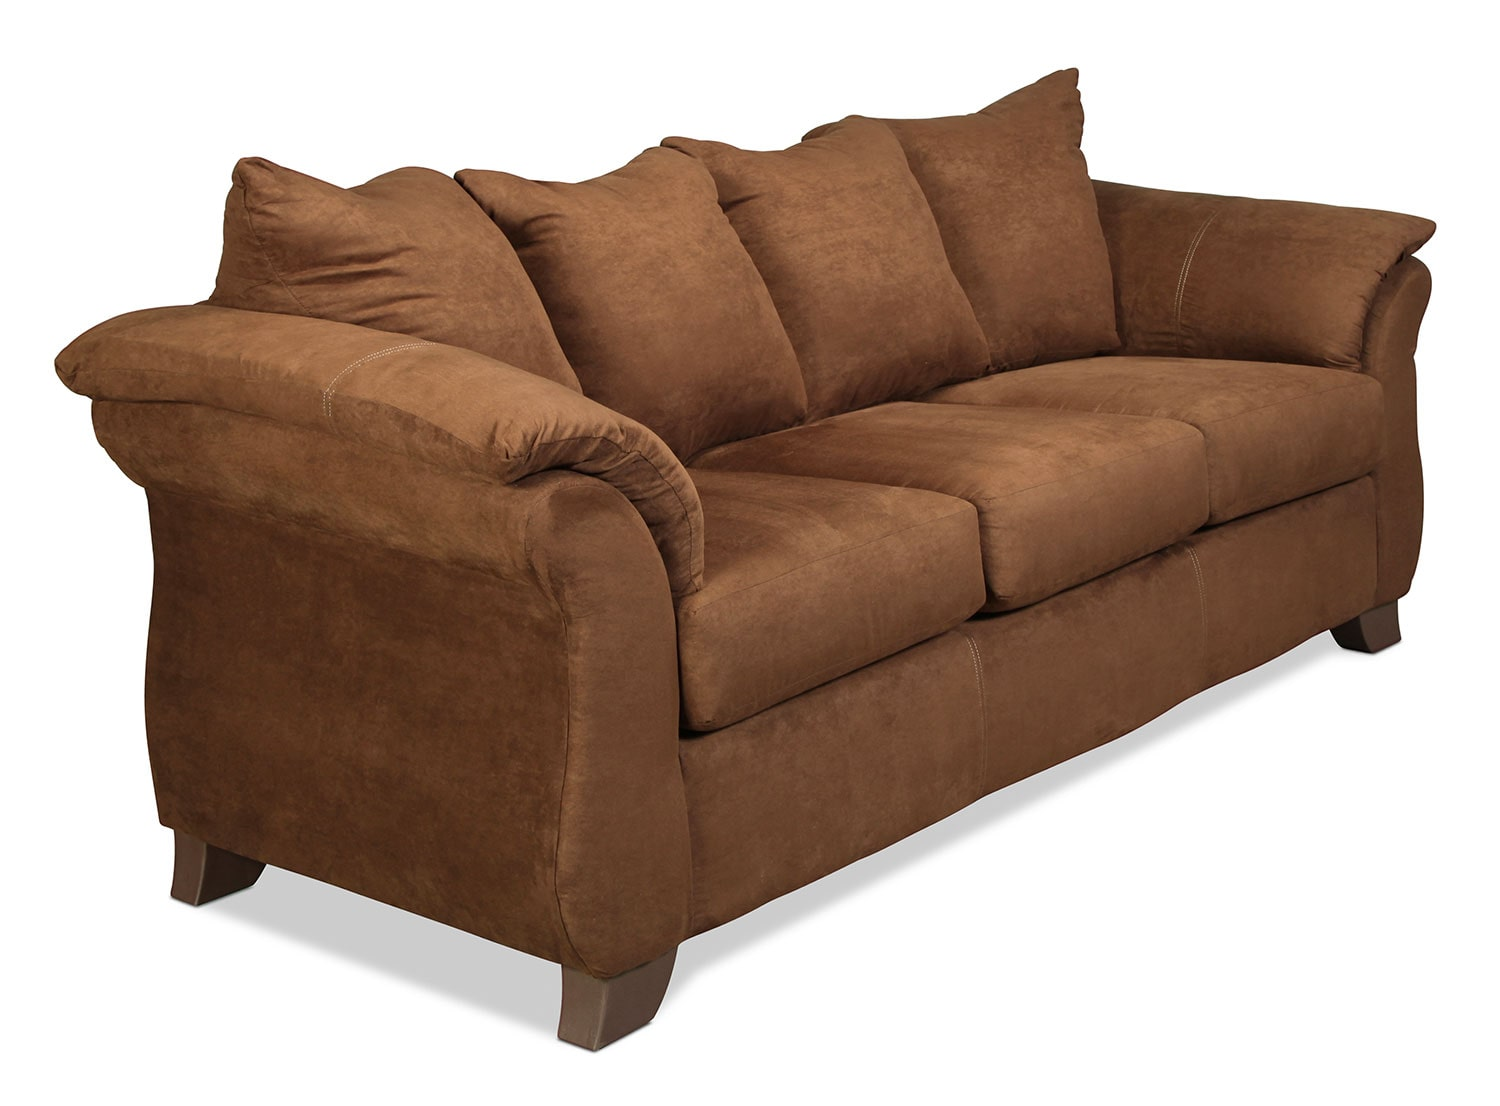 Shelby Bedroom Furniture Shelby Sofa Chocolate Levin Furniture